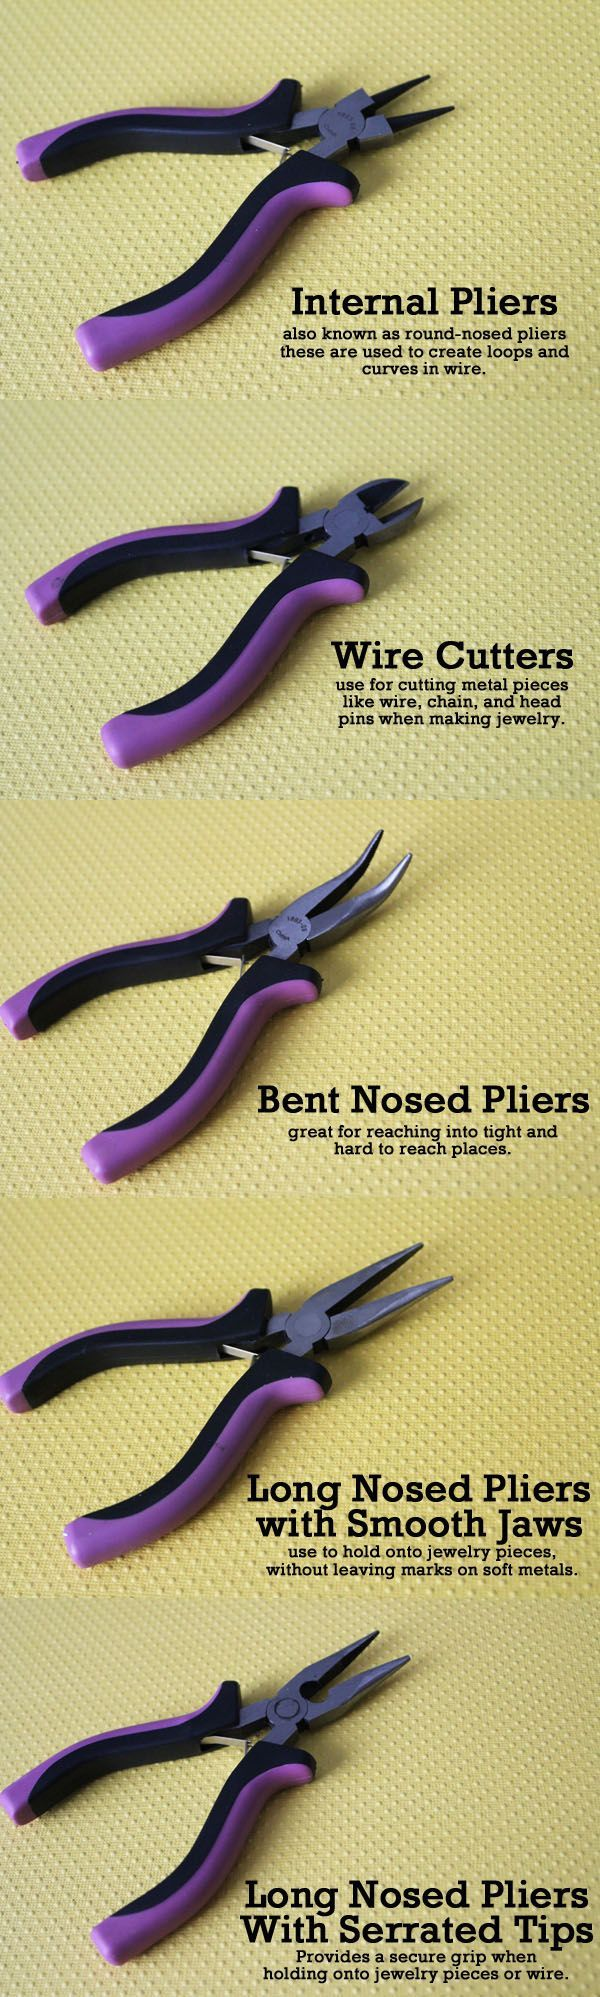 great post that explains what you need different jewelry pliers for